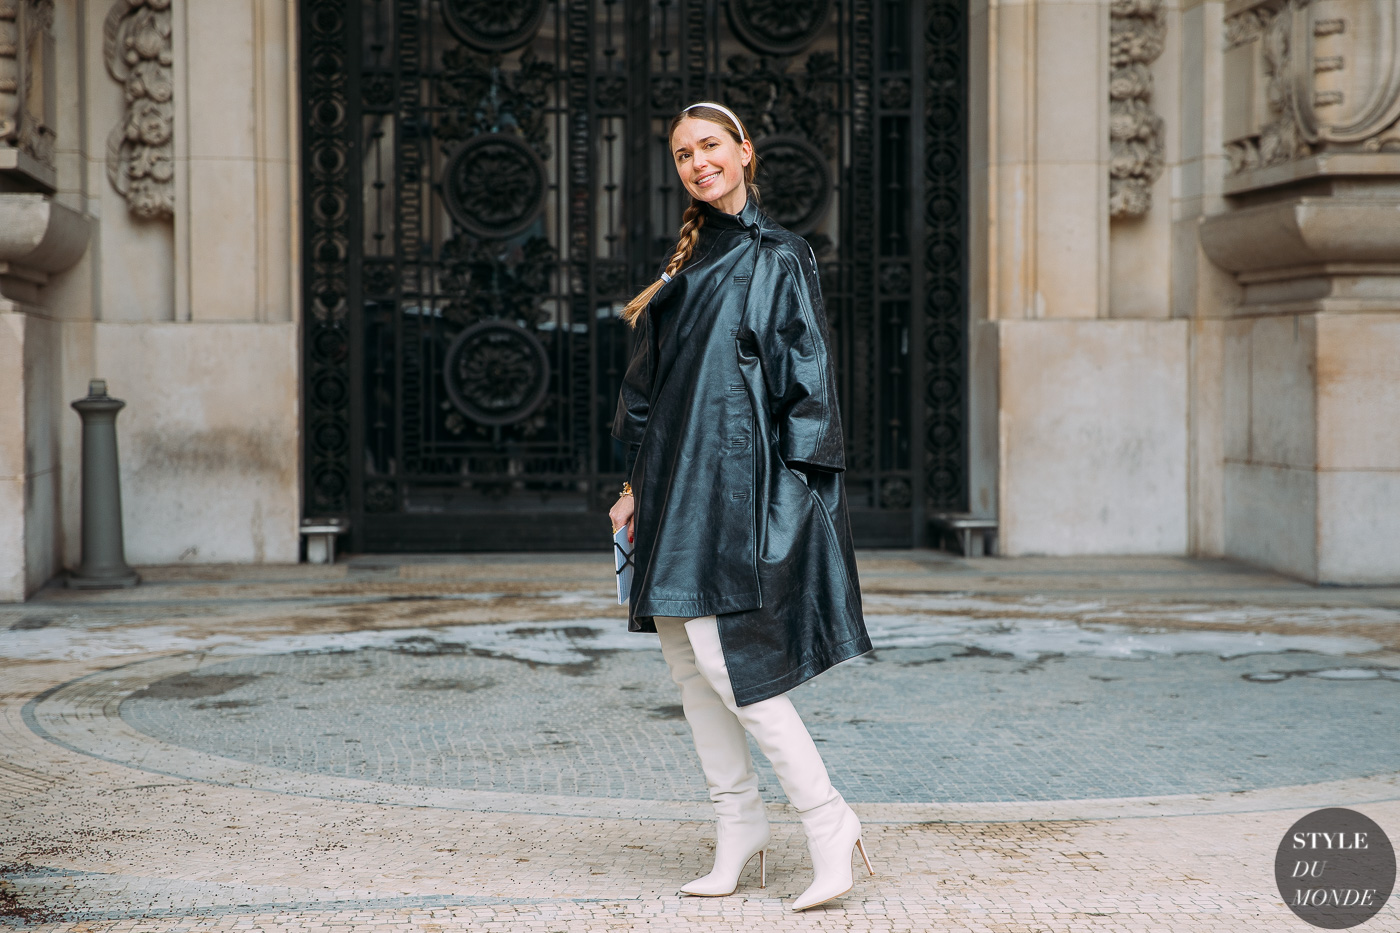 Pernille Teisbaek by STYLEDUMONDE Street Style Fashion Photography FW18 20180301_48A2203